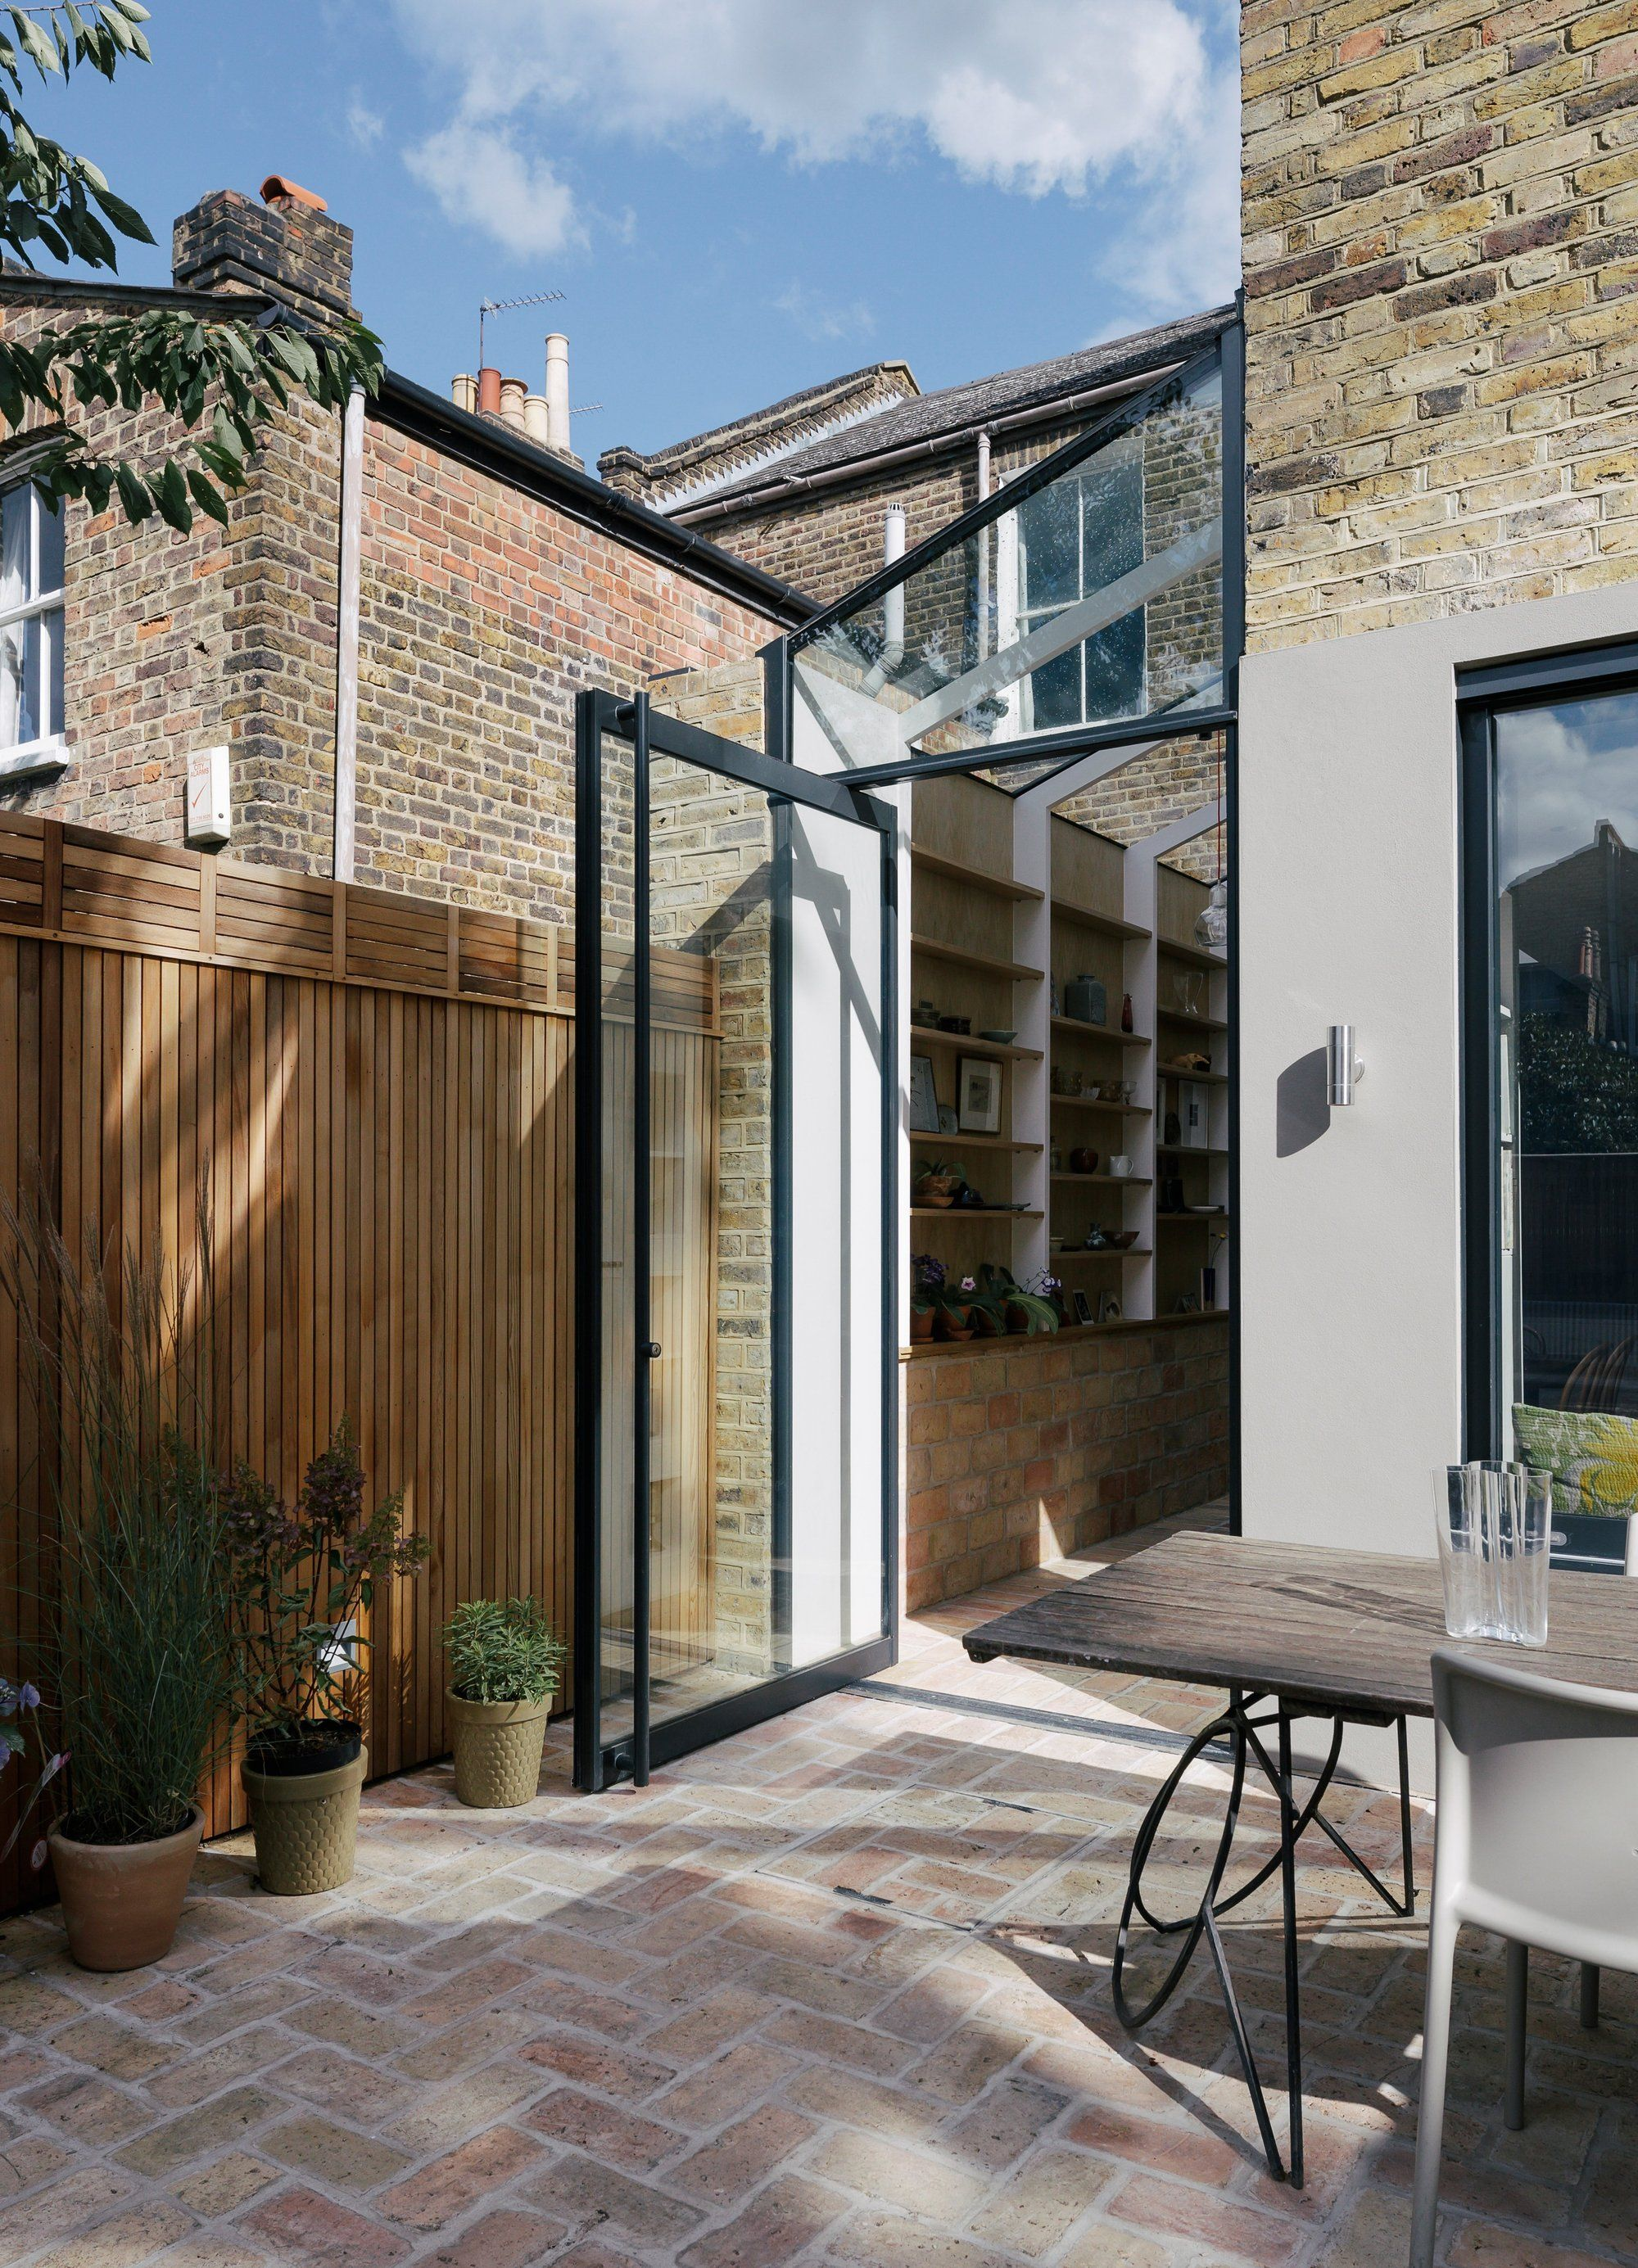 Gallery of Gallery House / Neil Dusheiko Architects - 20